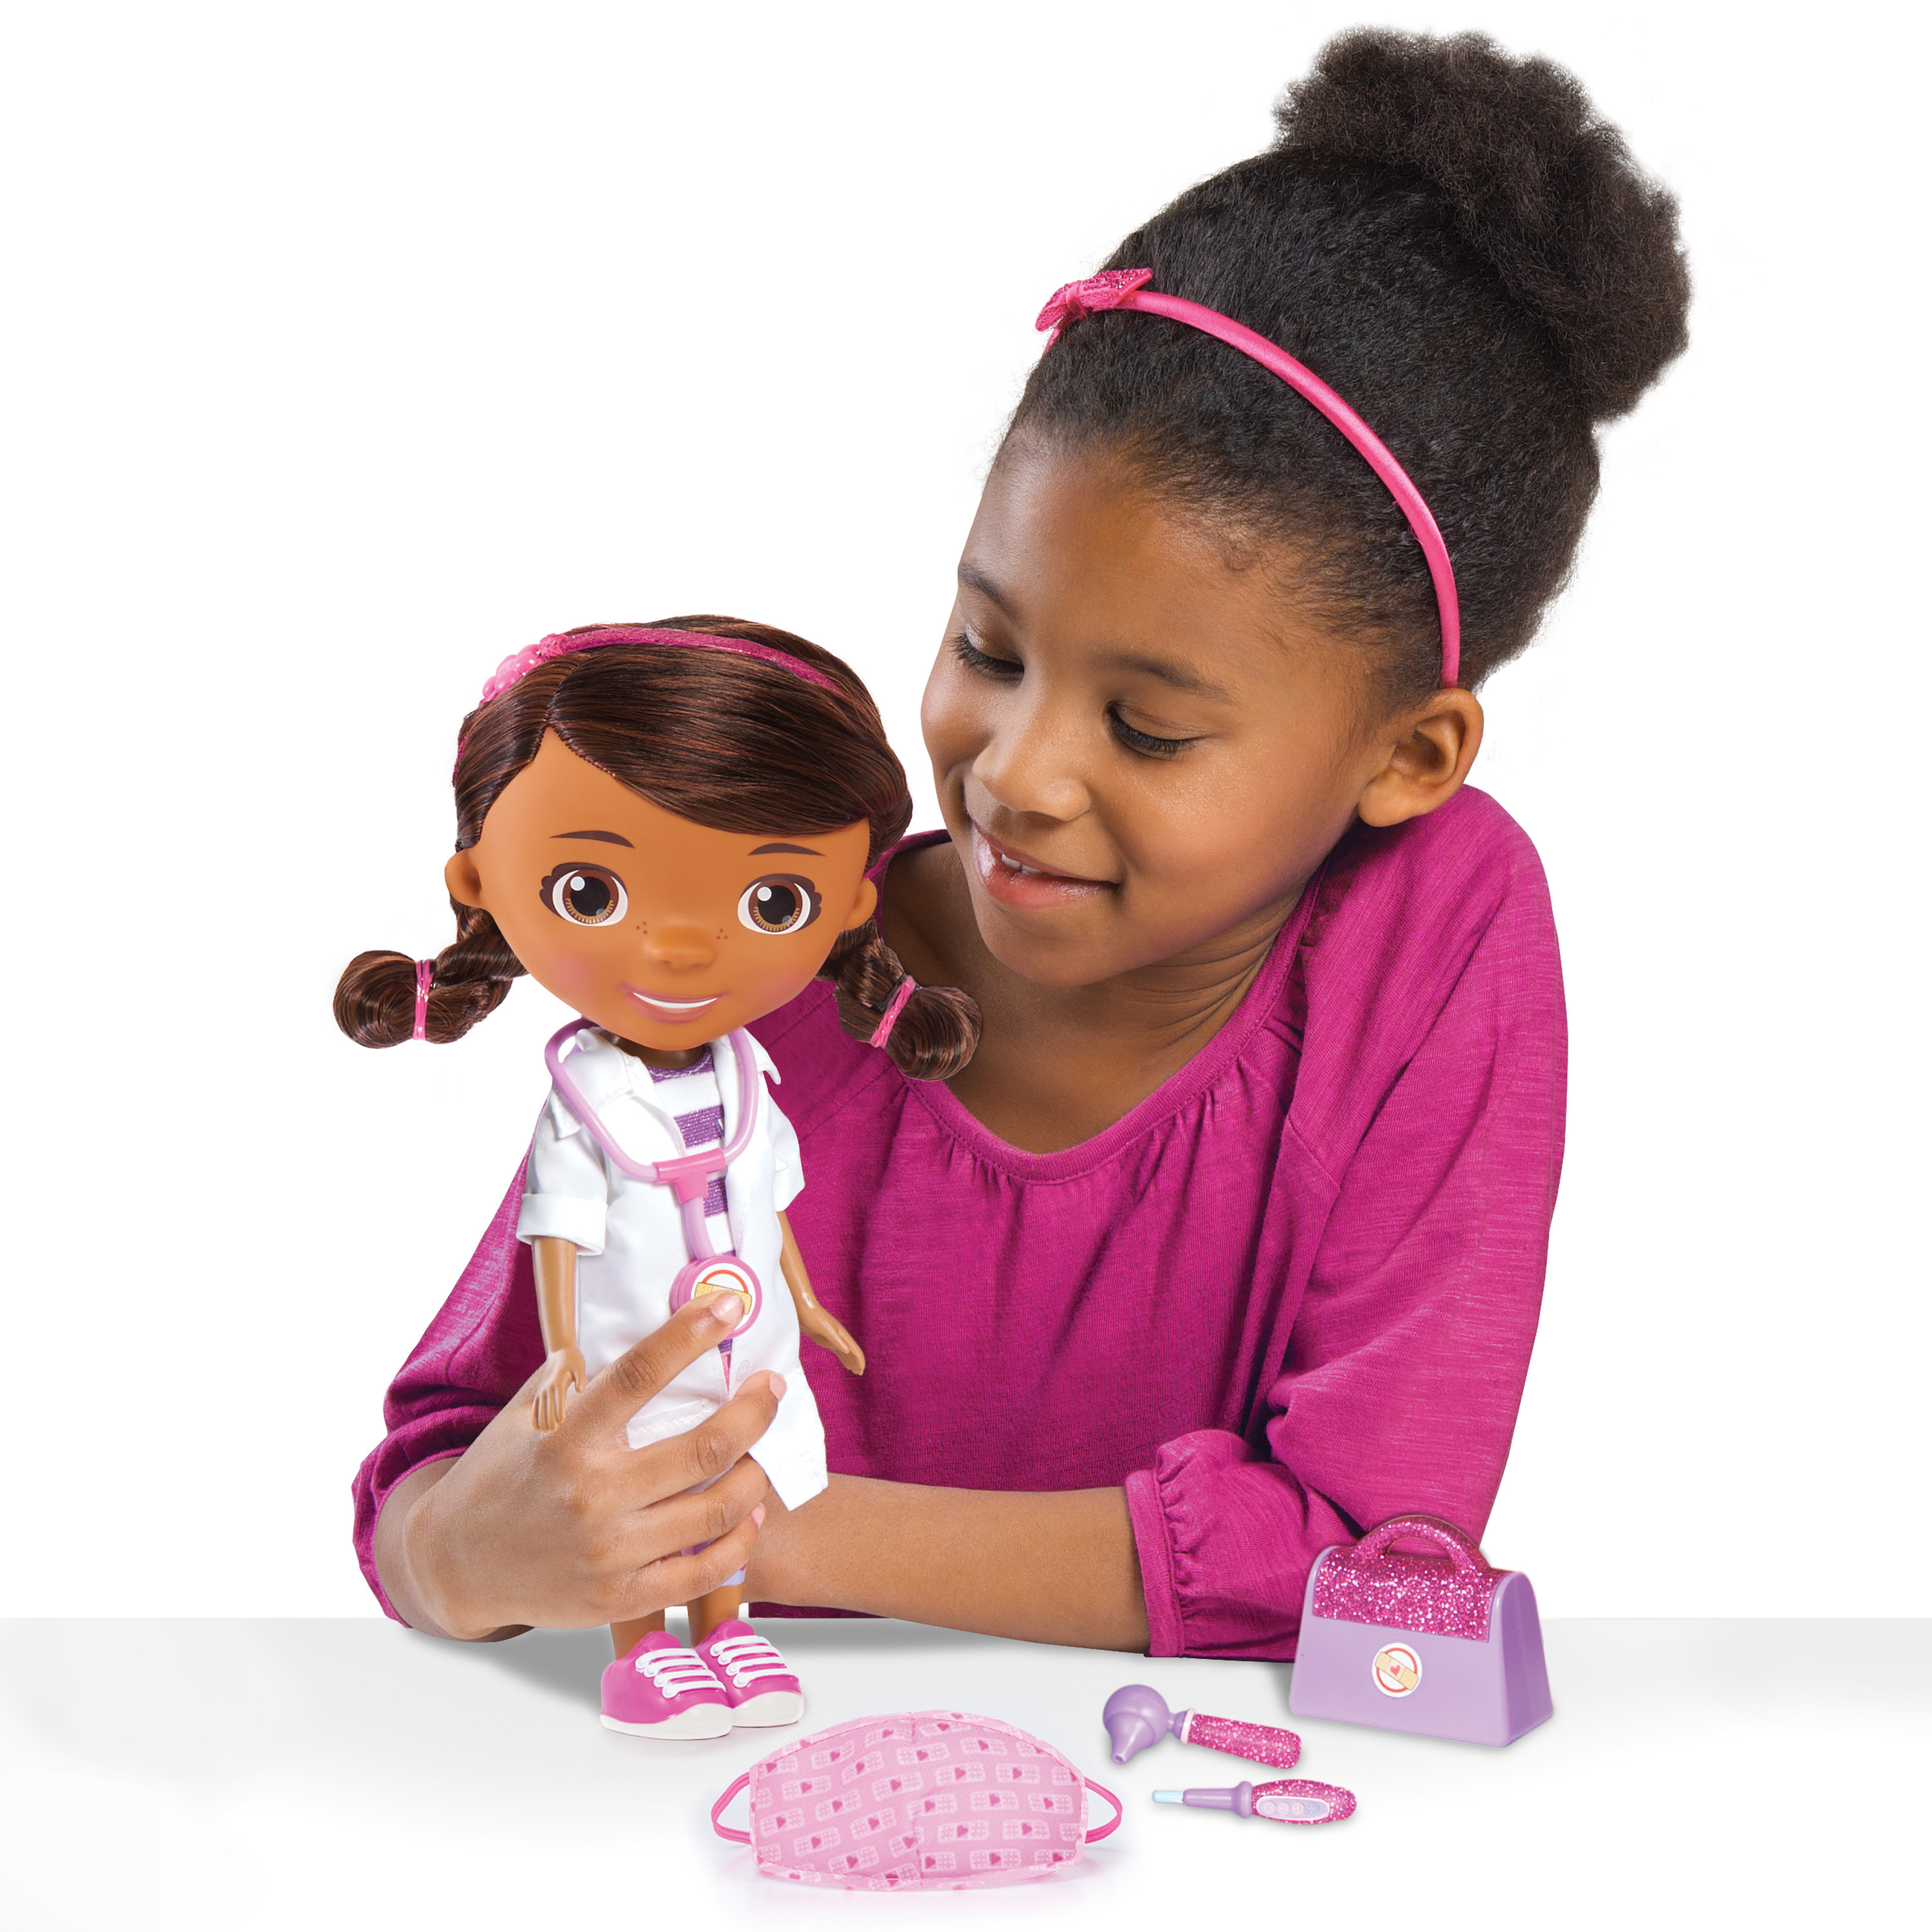 child playing with a doc mcstuffins doll and accessories